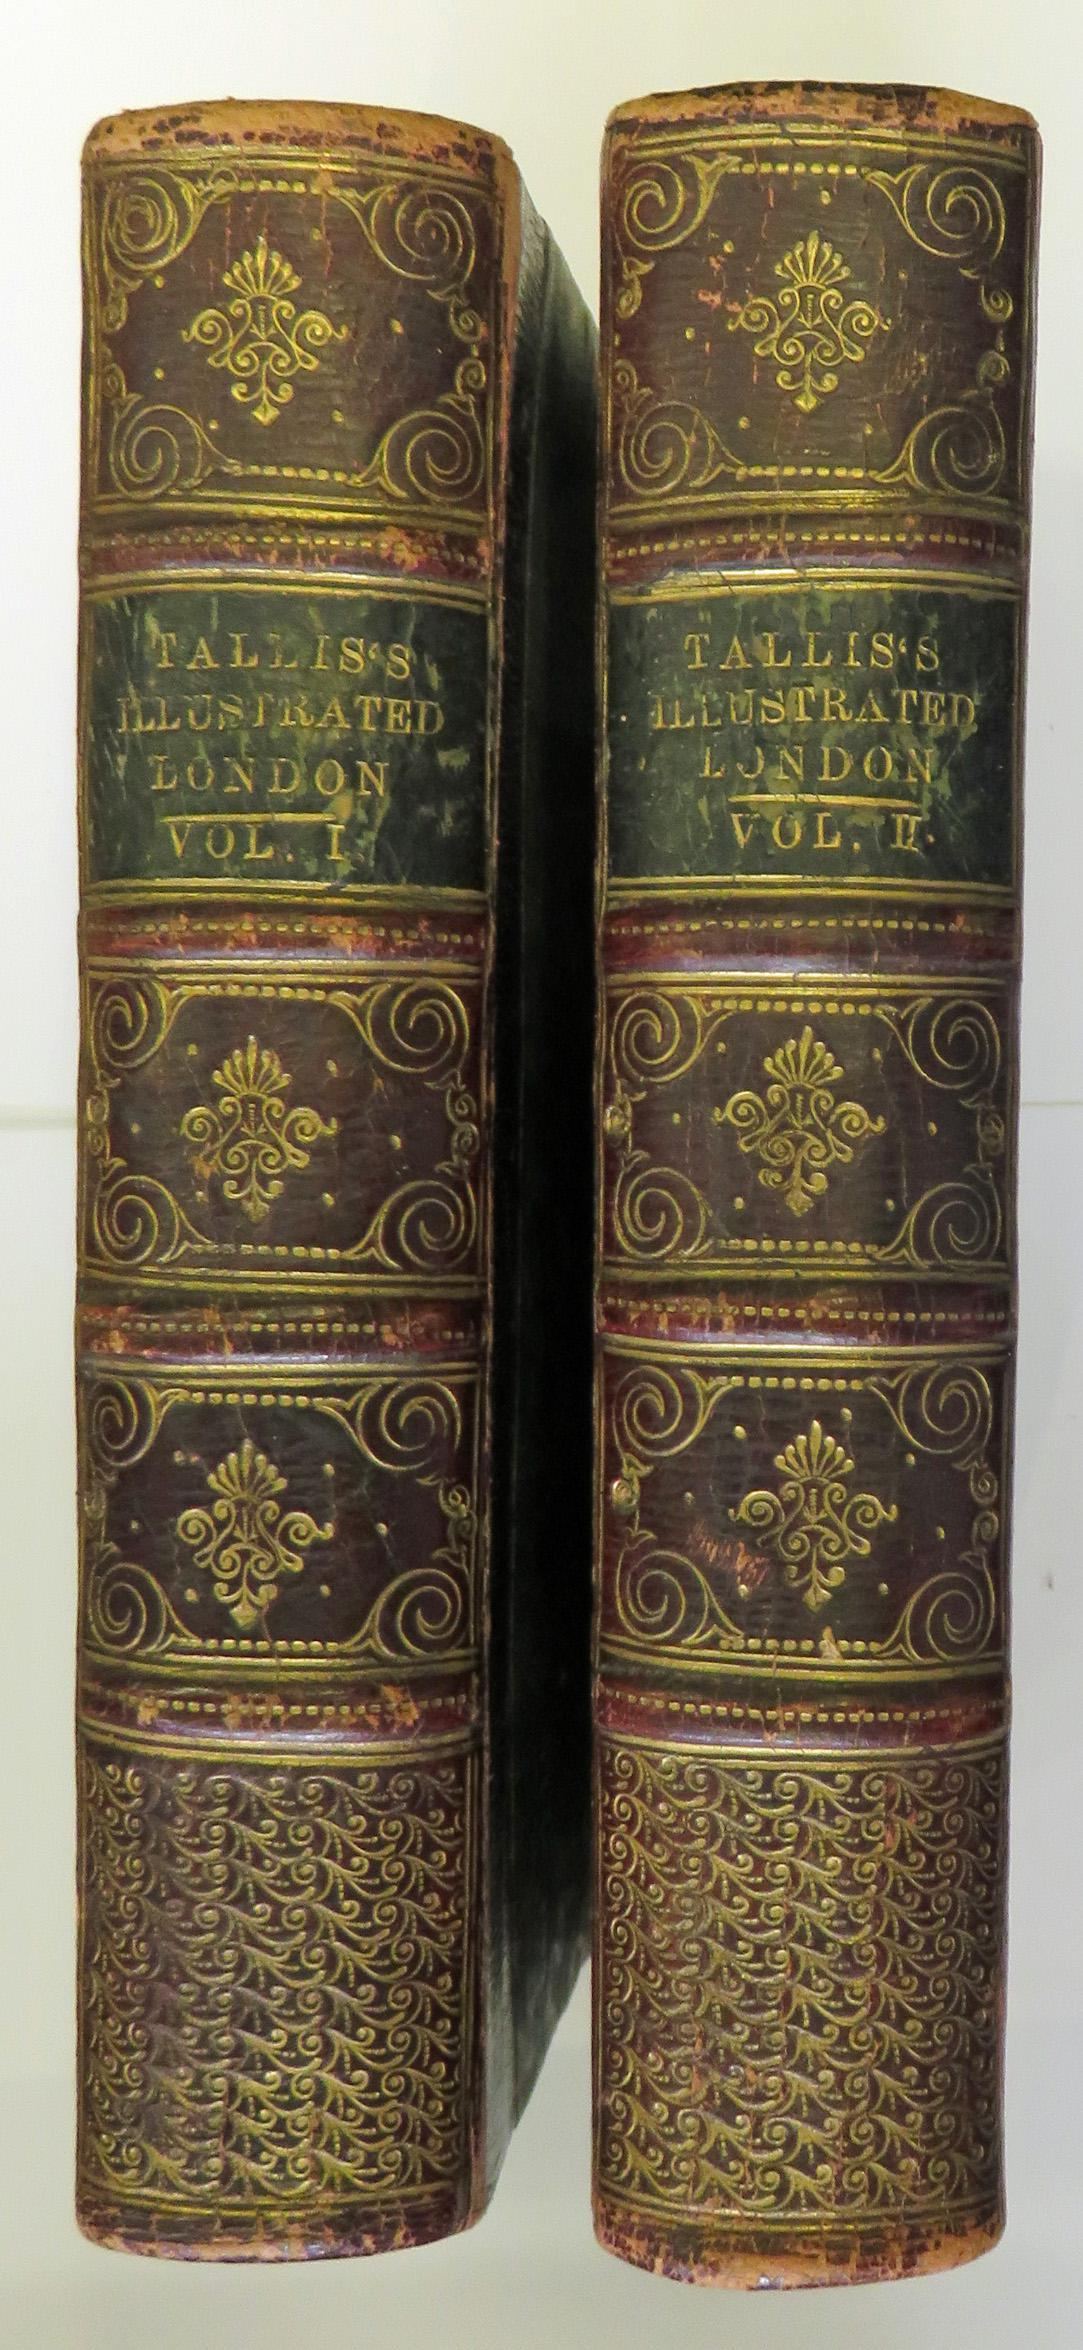 Tallis's Illustrated London In Commemoration of The Great Exhibition of 1851 in 2 volumes complete